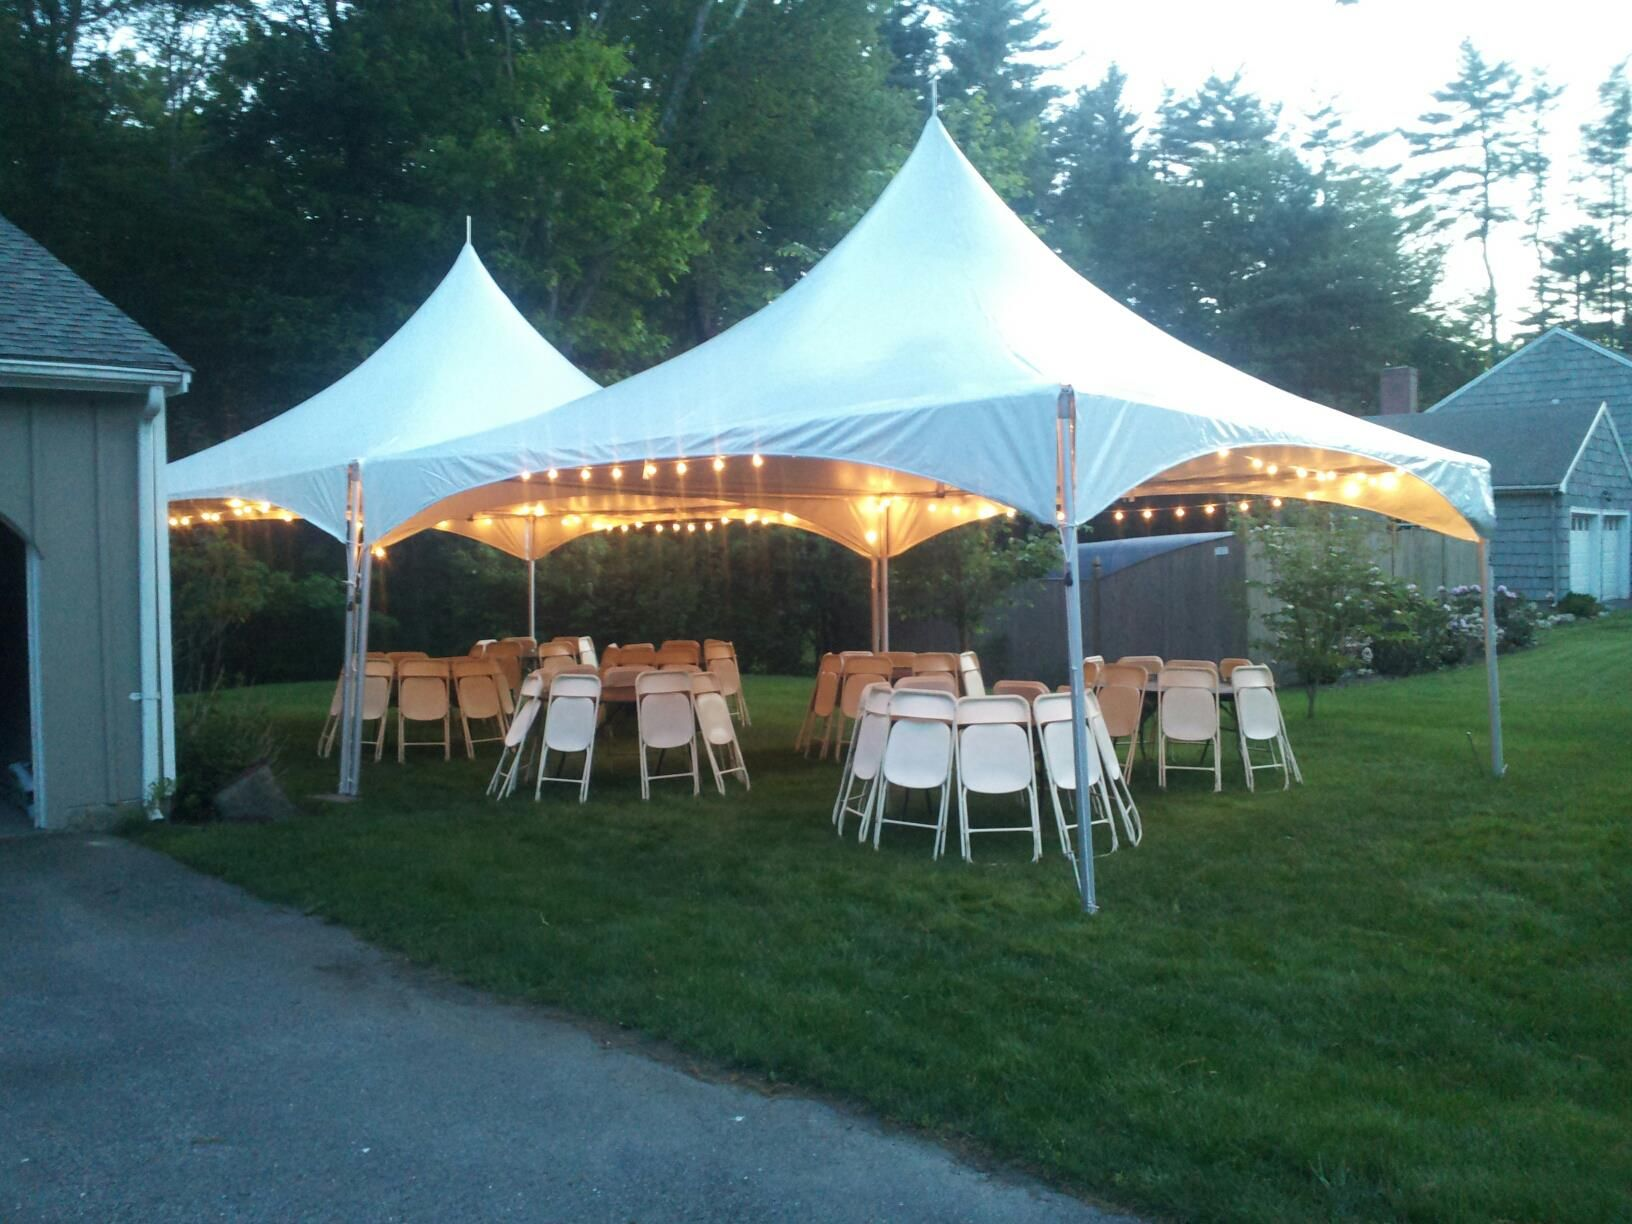 Pin By Joy Harewood On Parking Lot Bday Party Tent